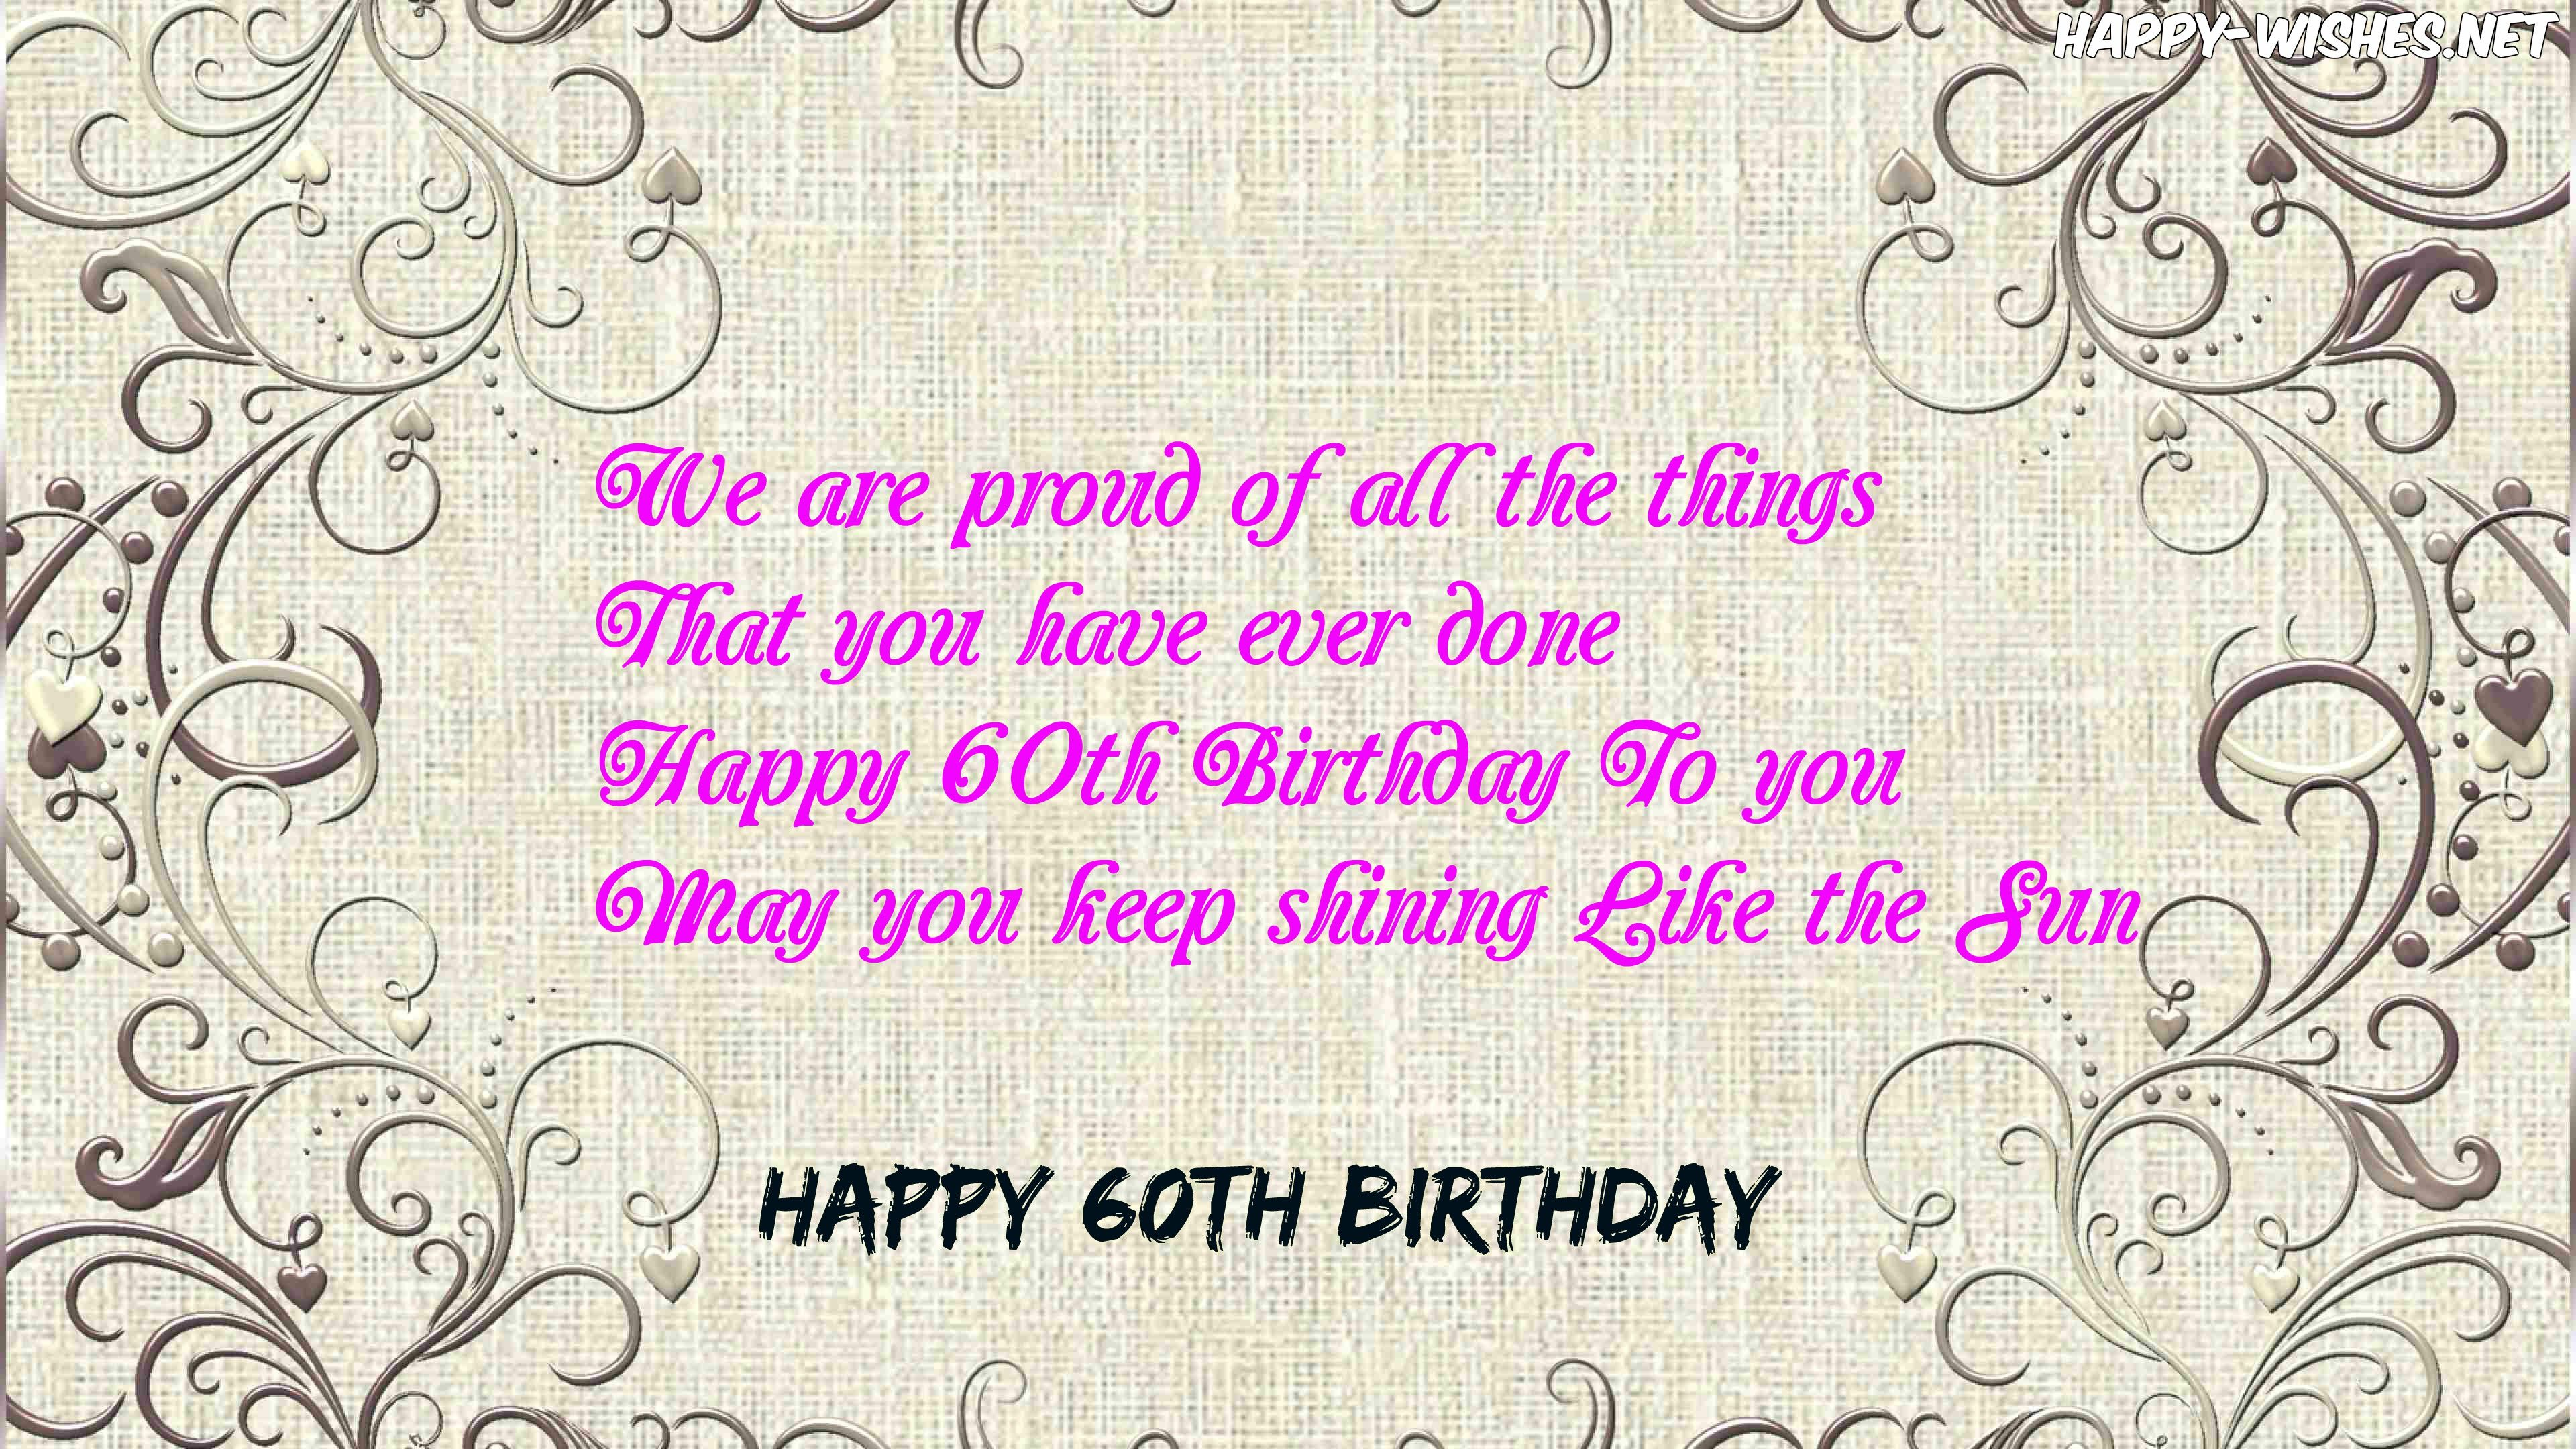 Happy 60th Birthday Wishes Quotes, Messages For 60 Year